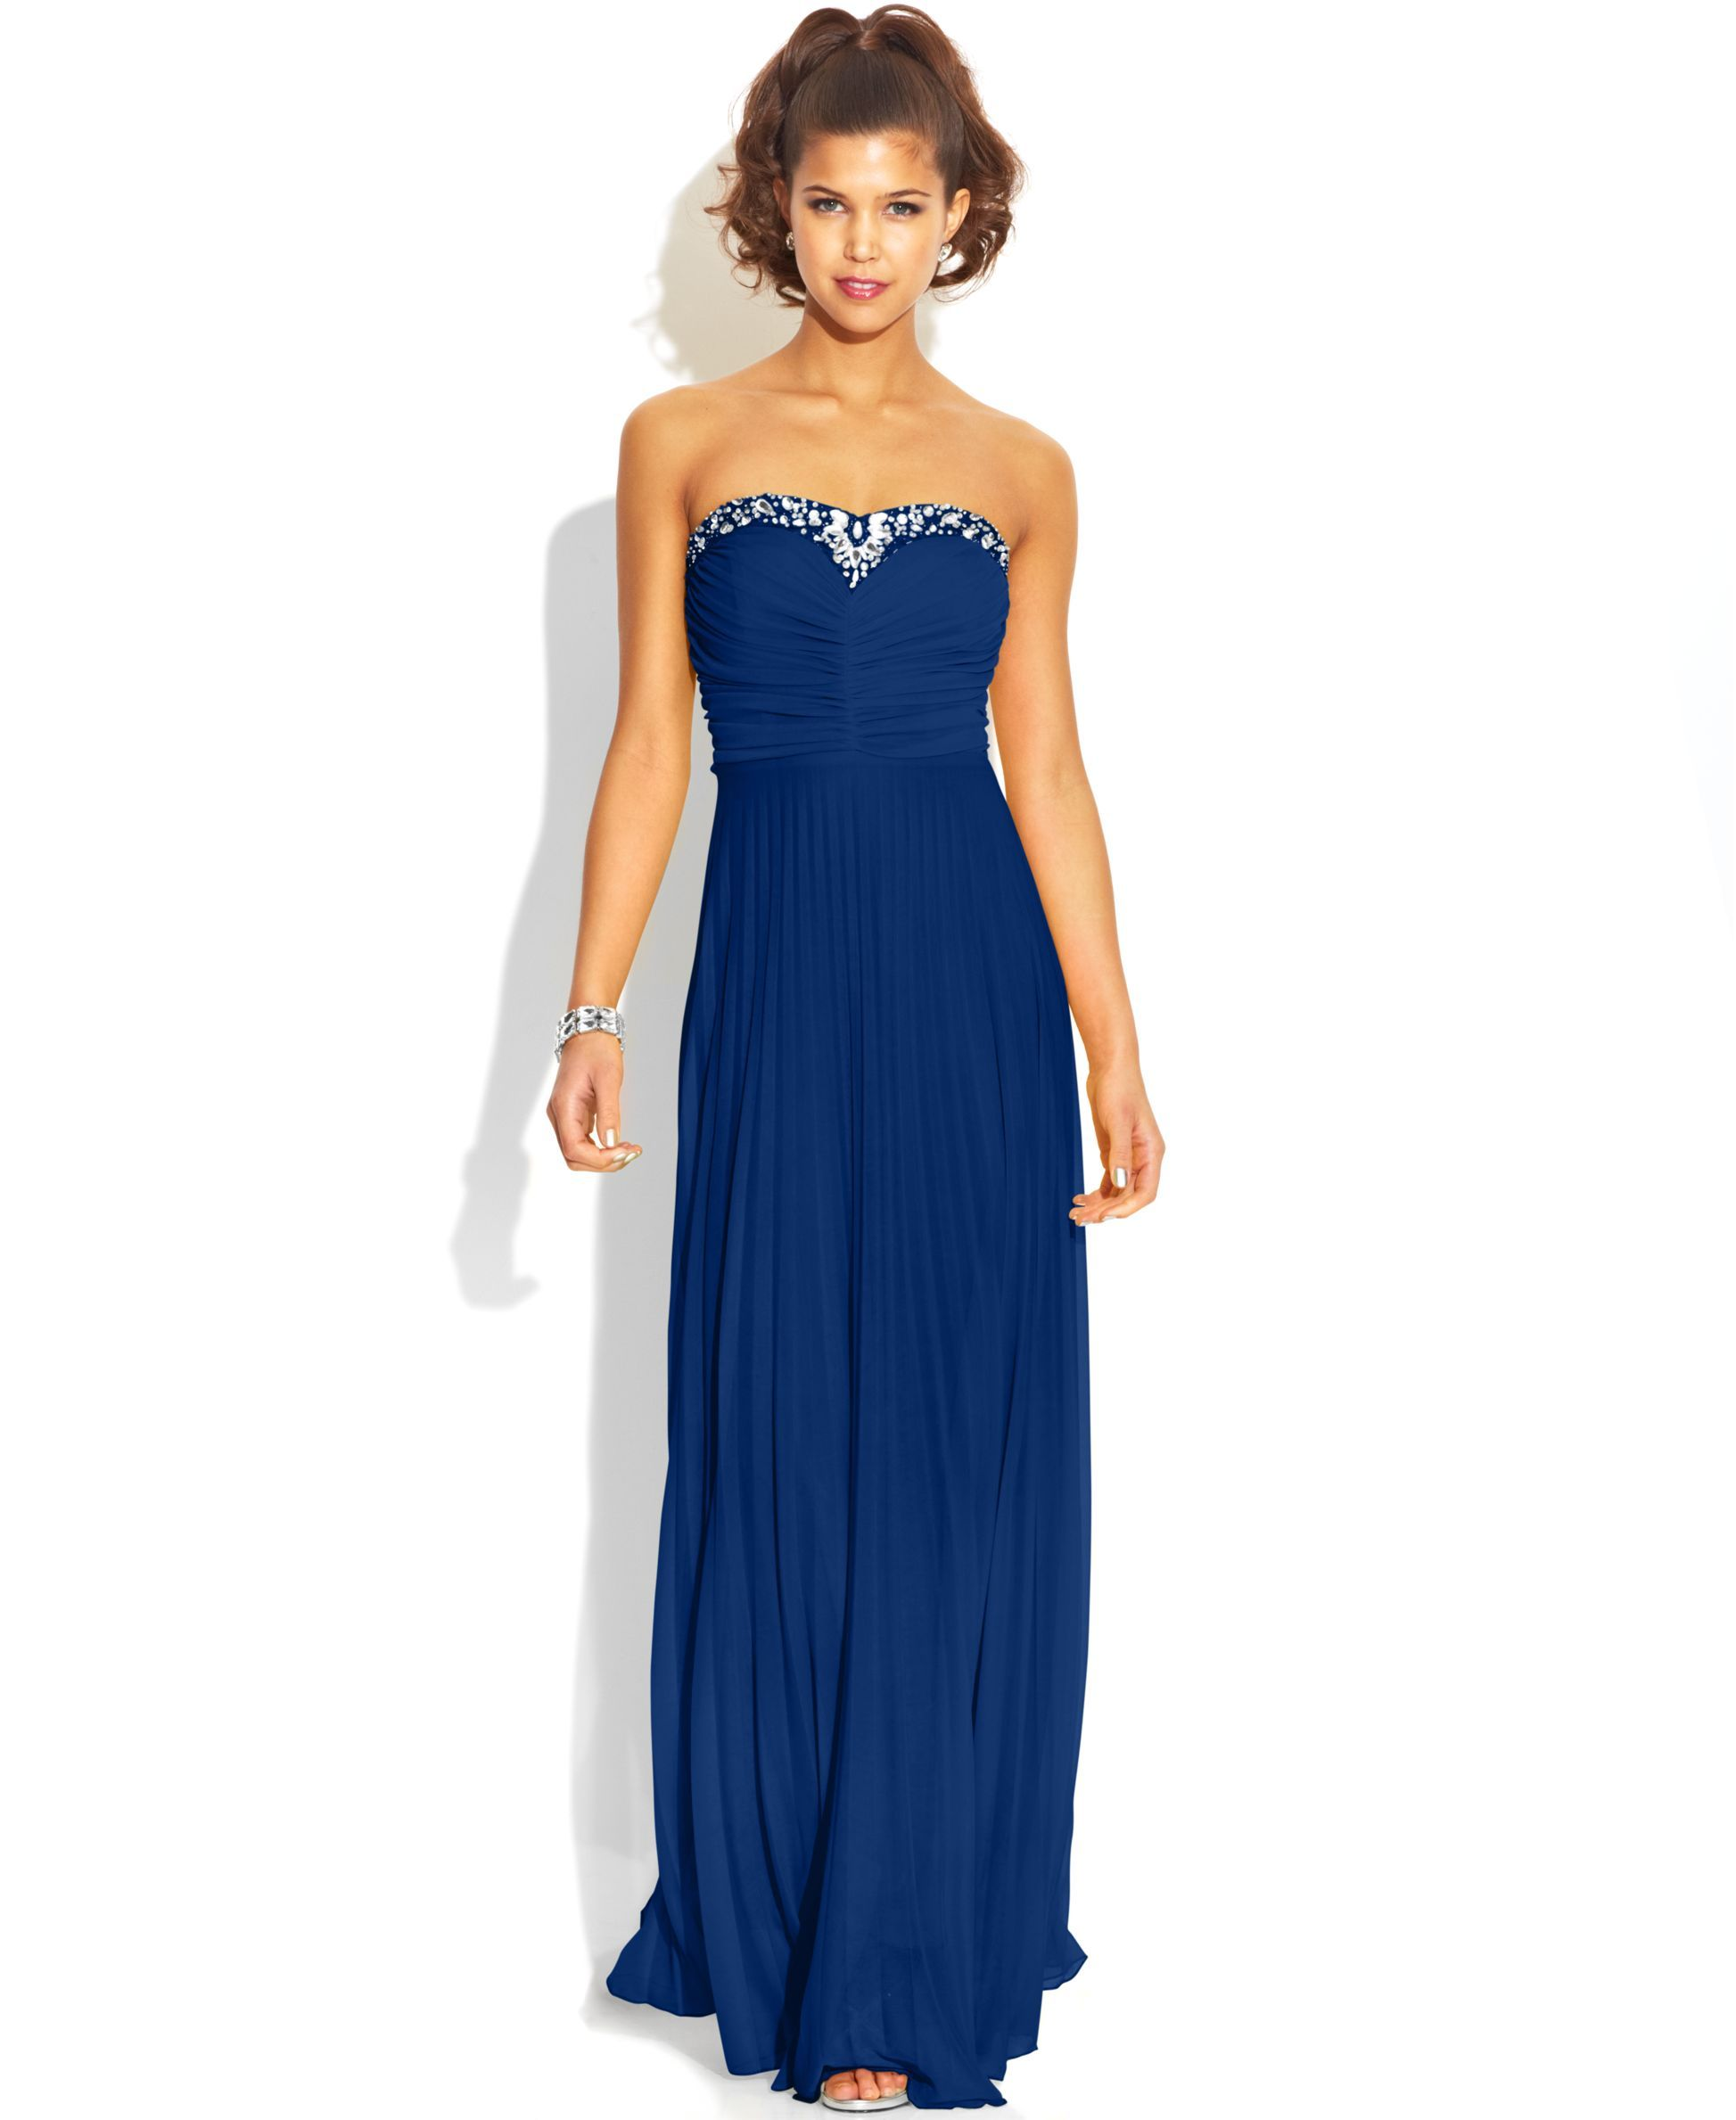 ea673bfe87ac B Darlin Juniors' Pleated Jewel-Trim Dress - Juniors Prom Dresses Under $99  - Macy's